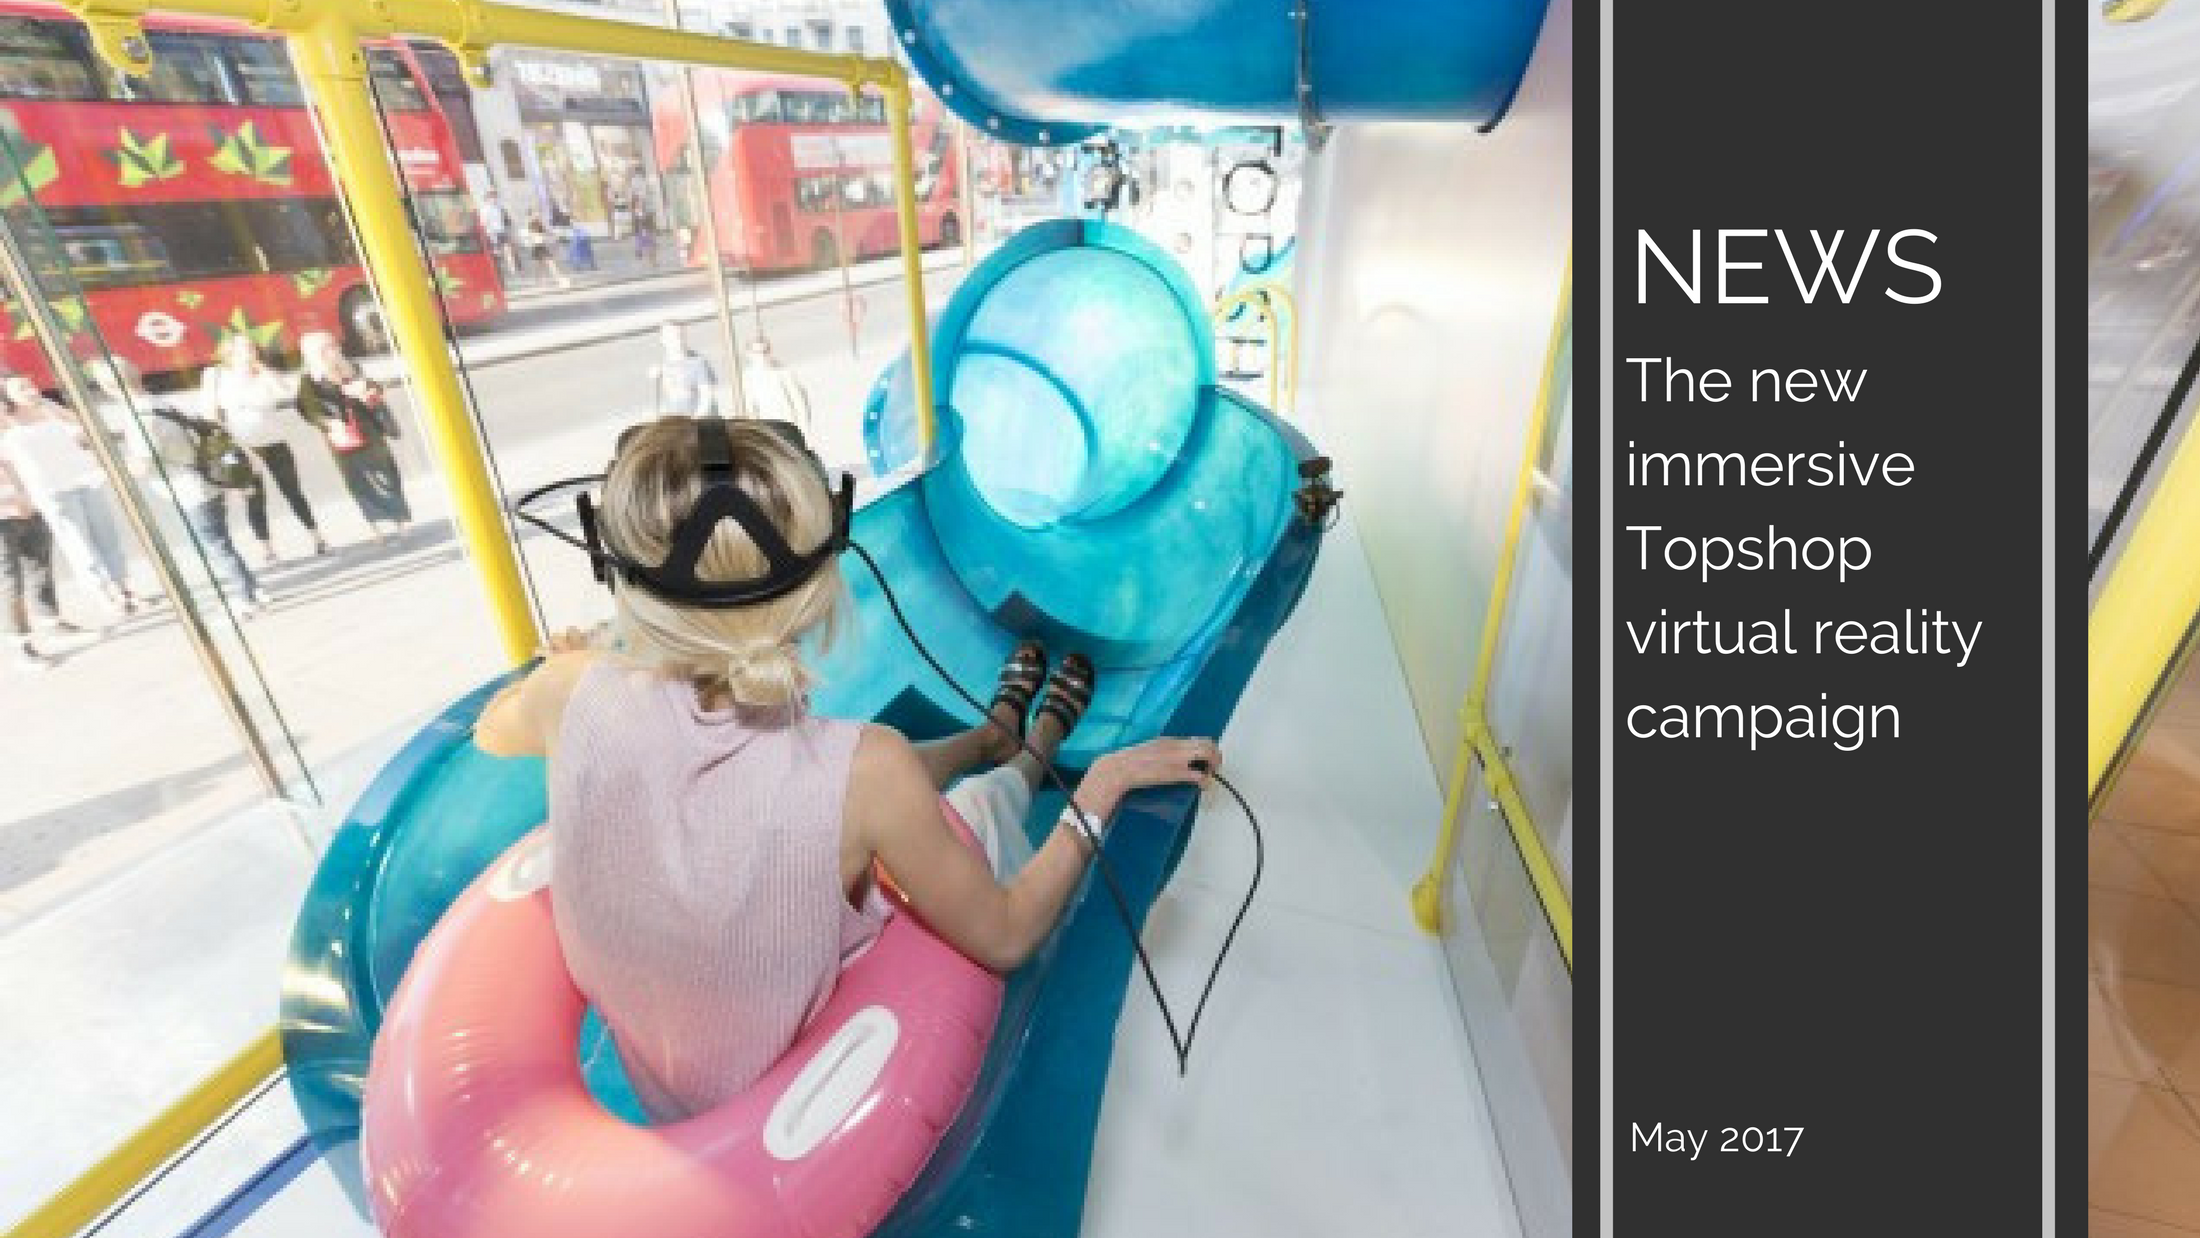 Trends News 10 - The new immersive Topshop virtual reality campaign